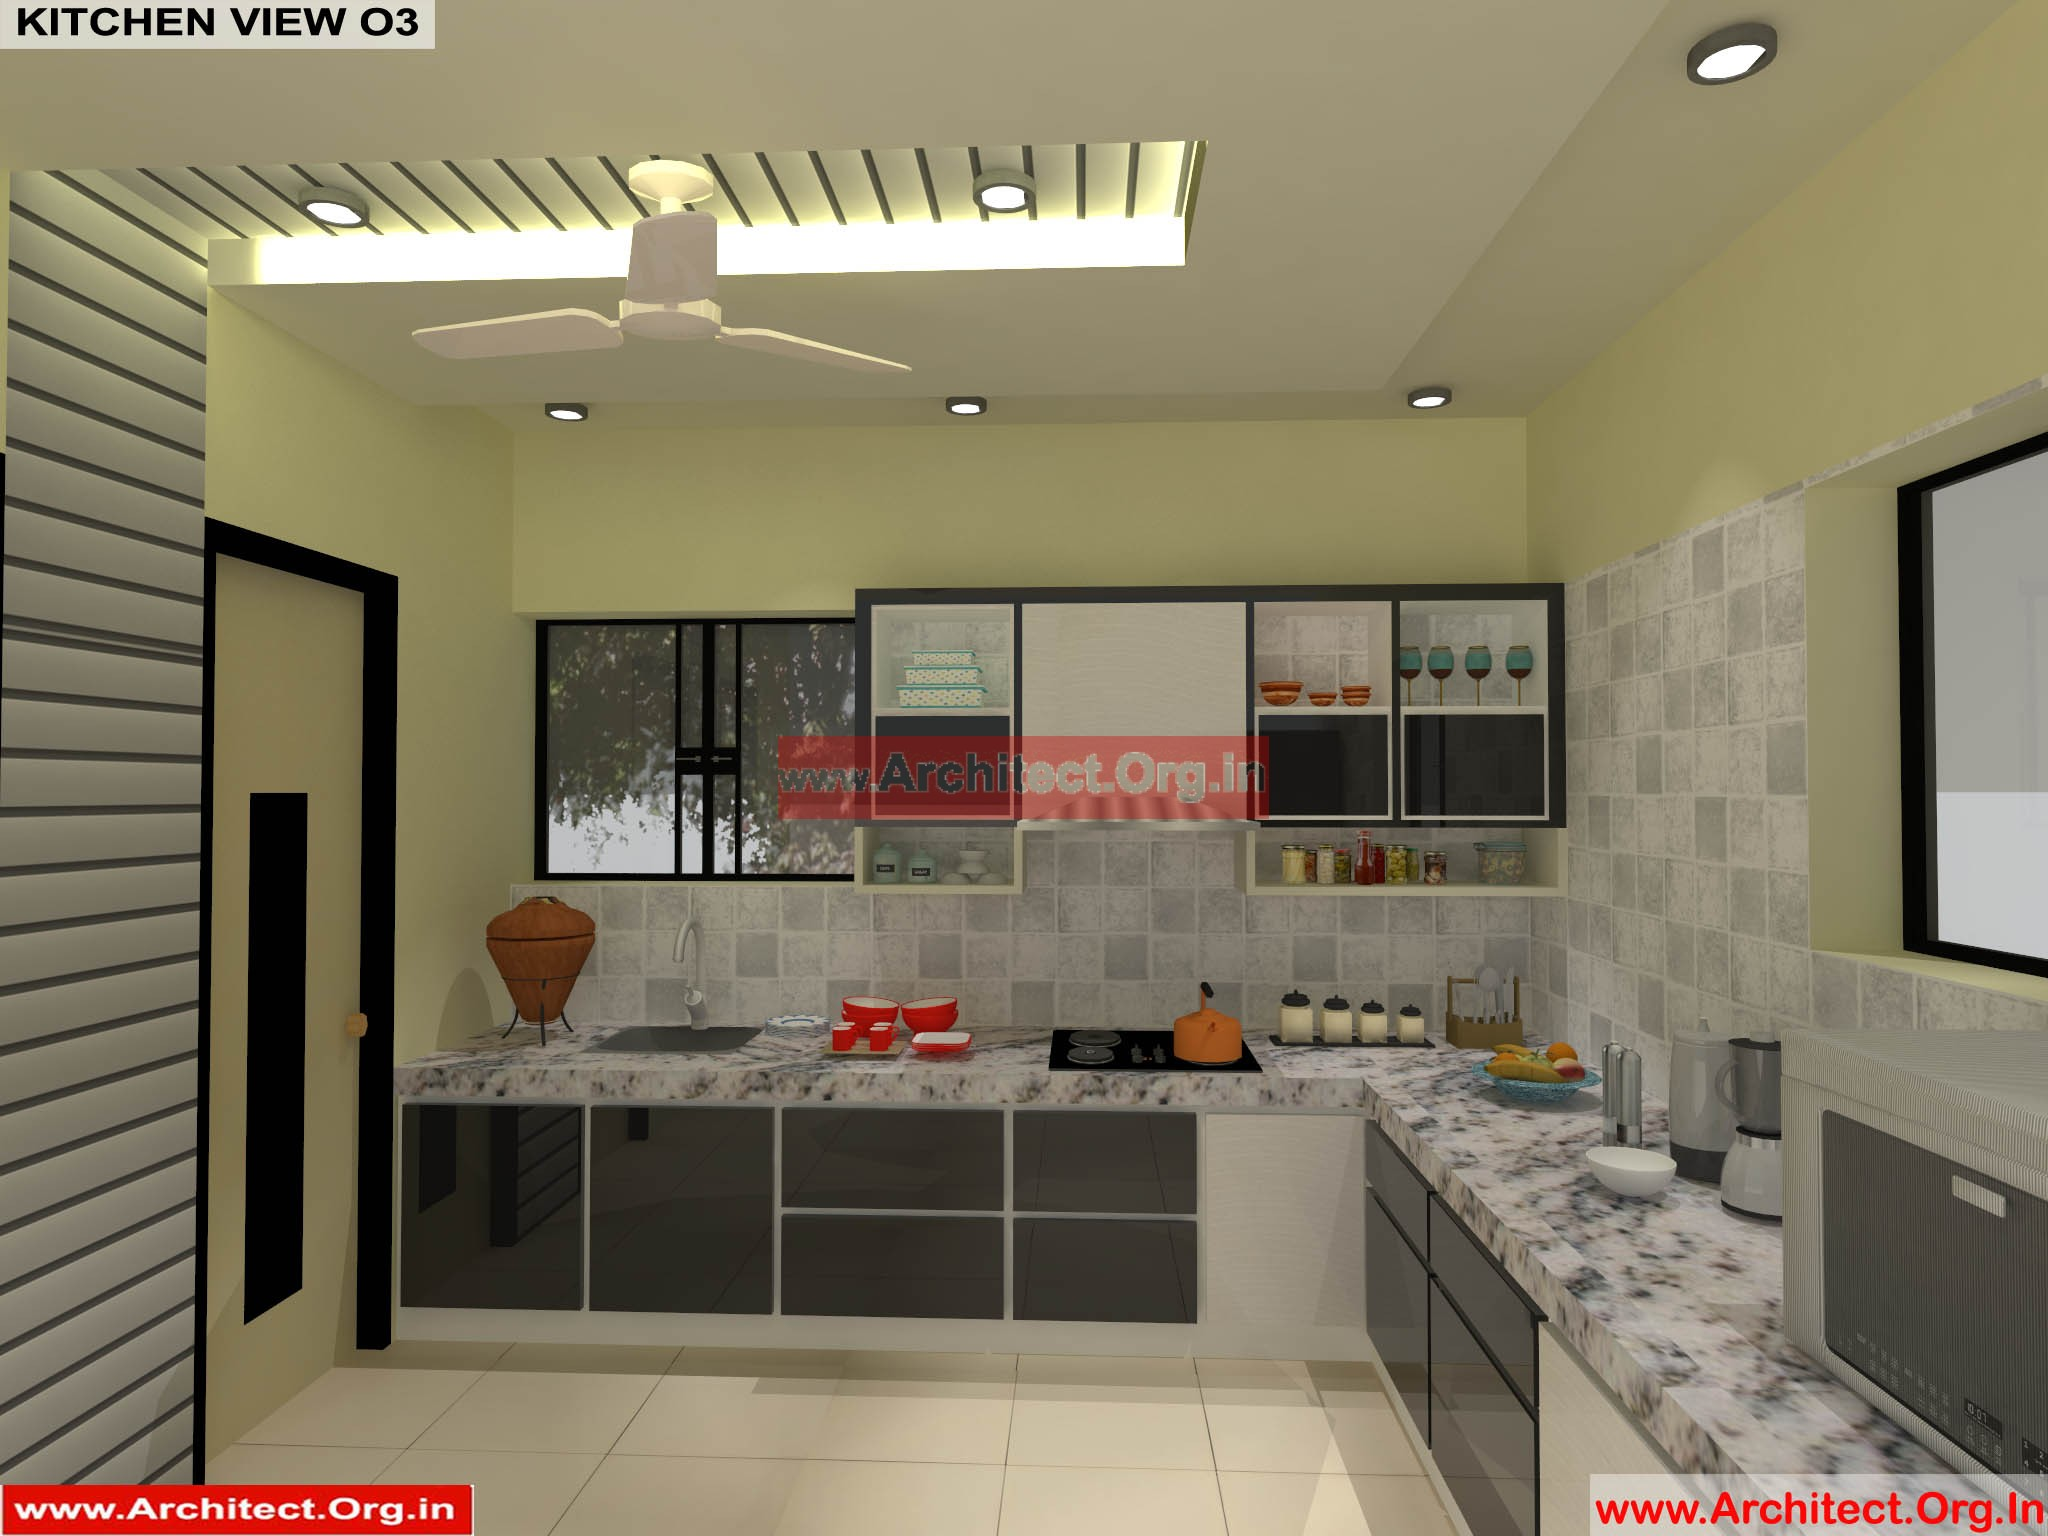 Mr pankaj fr ms rakhi nagpur maharashtra house interior kitchen view 03